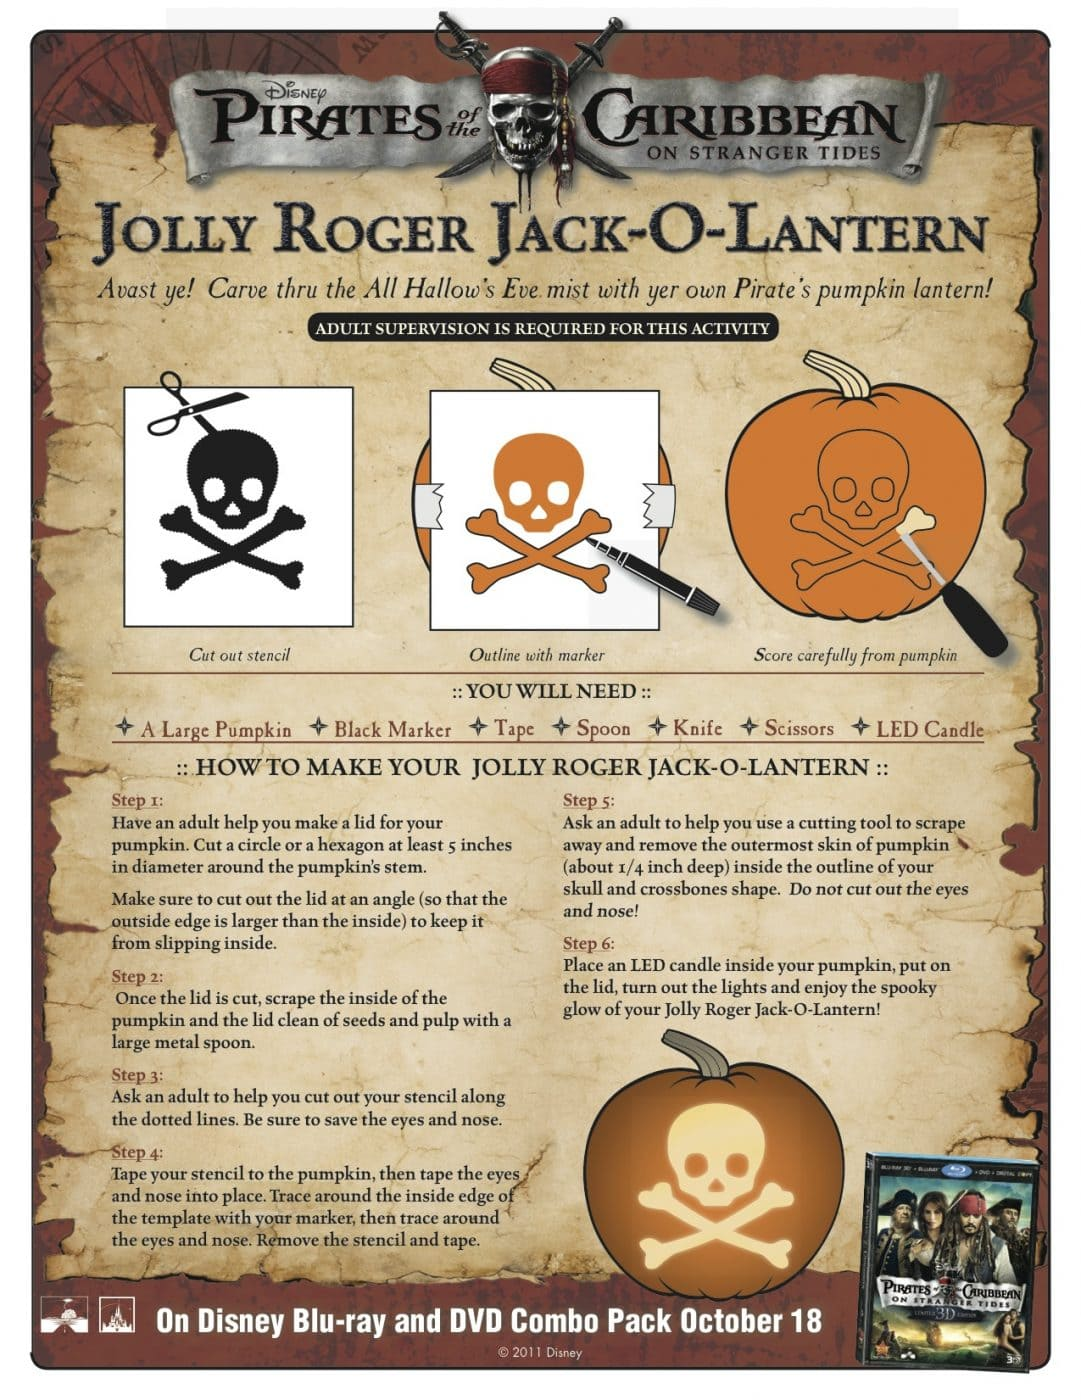 FREE Jolly Roger Jack-O-Lantern Stencil from Pirates of Caribbean